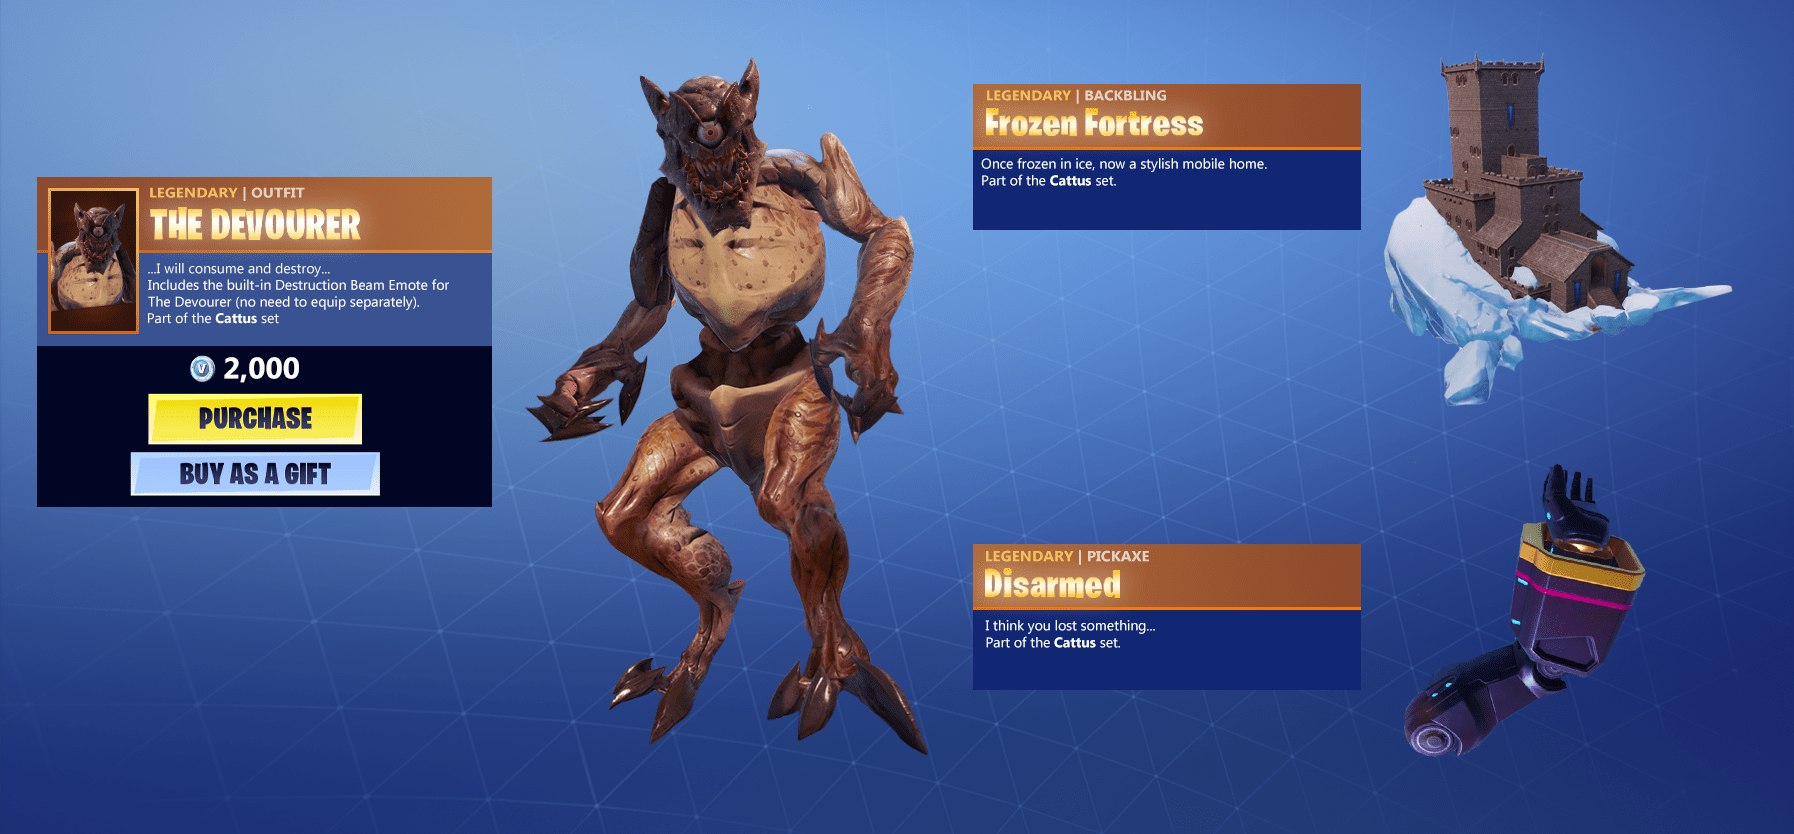 Fortnite Skin Concept - The Devourer via u/10shredder00